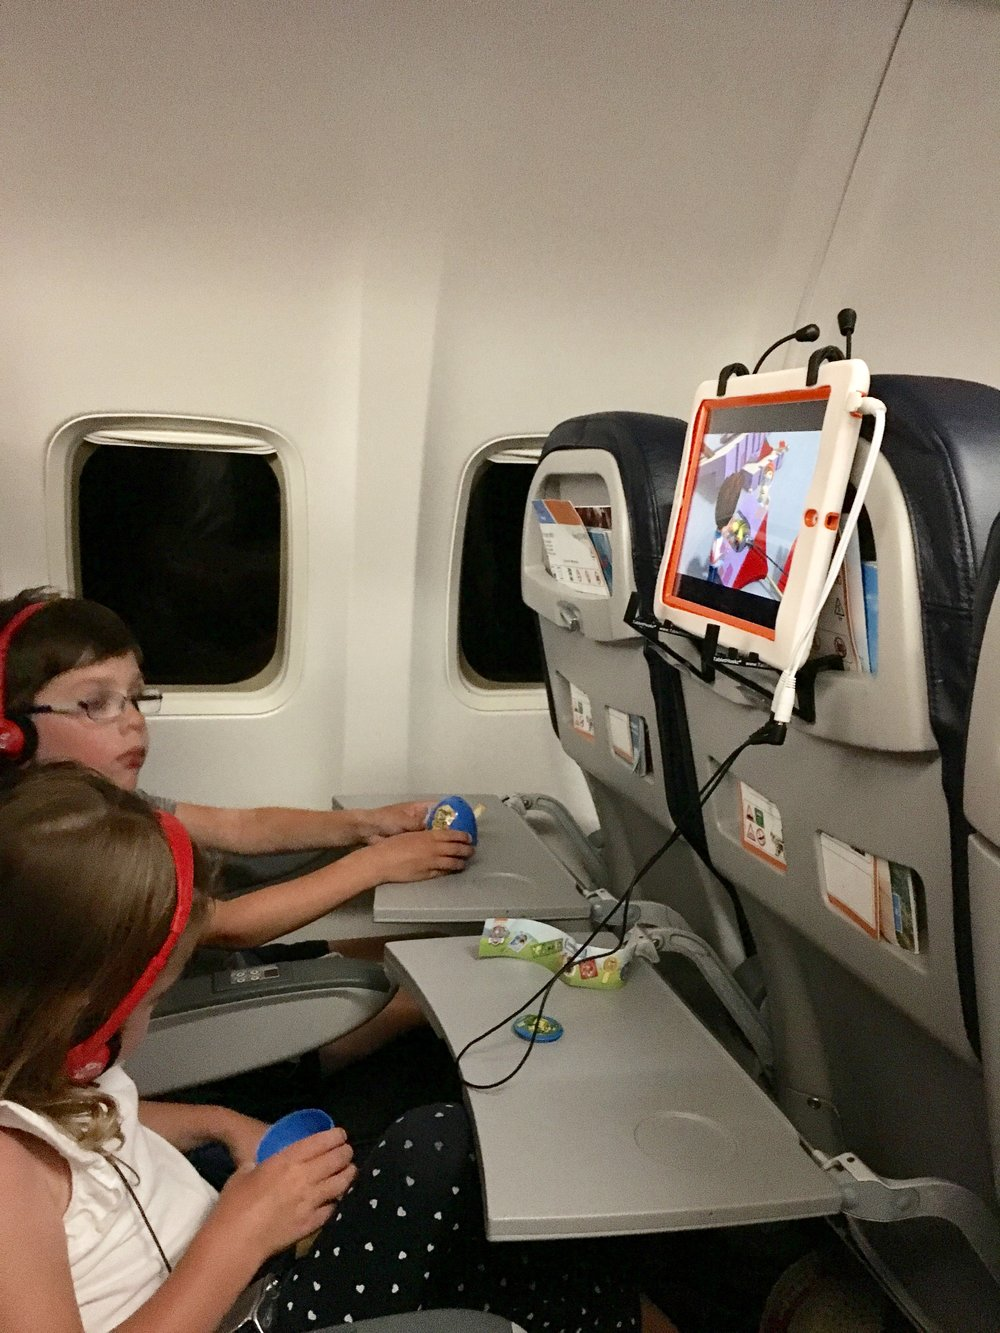 Travelling with kids - TabletHookz.com Tablet Hooks theairhook airhook tablet hook tablet stand Watch ipad on plane Watch movie on plane kids entertainment when travelling seatback